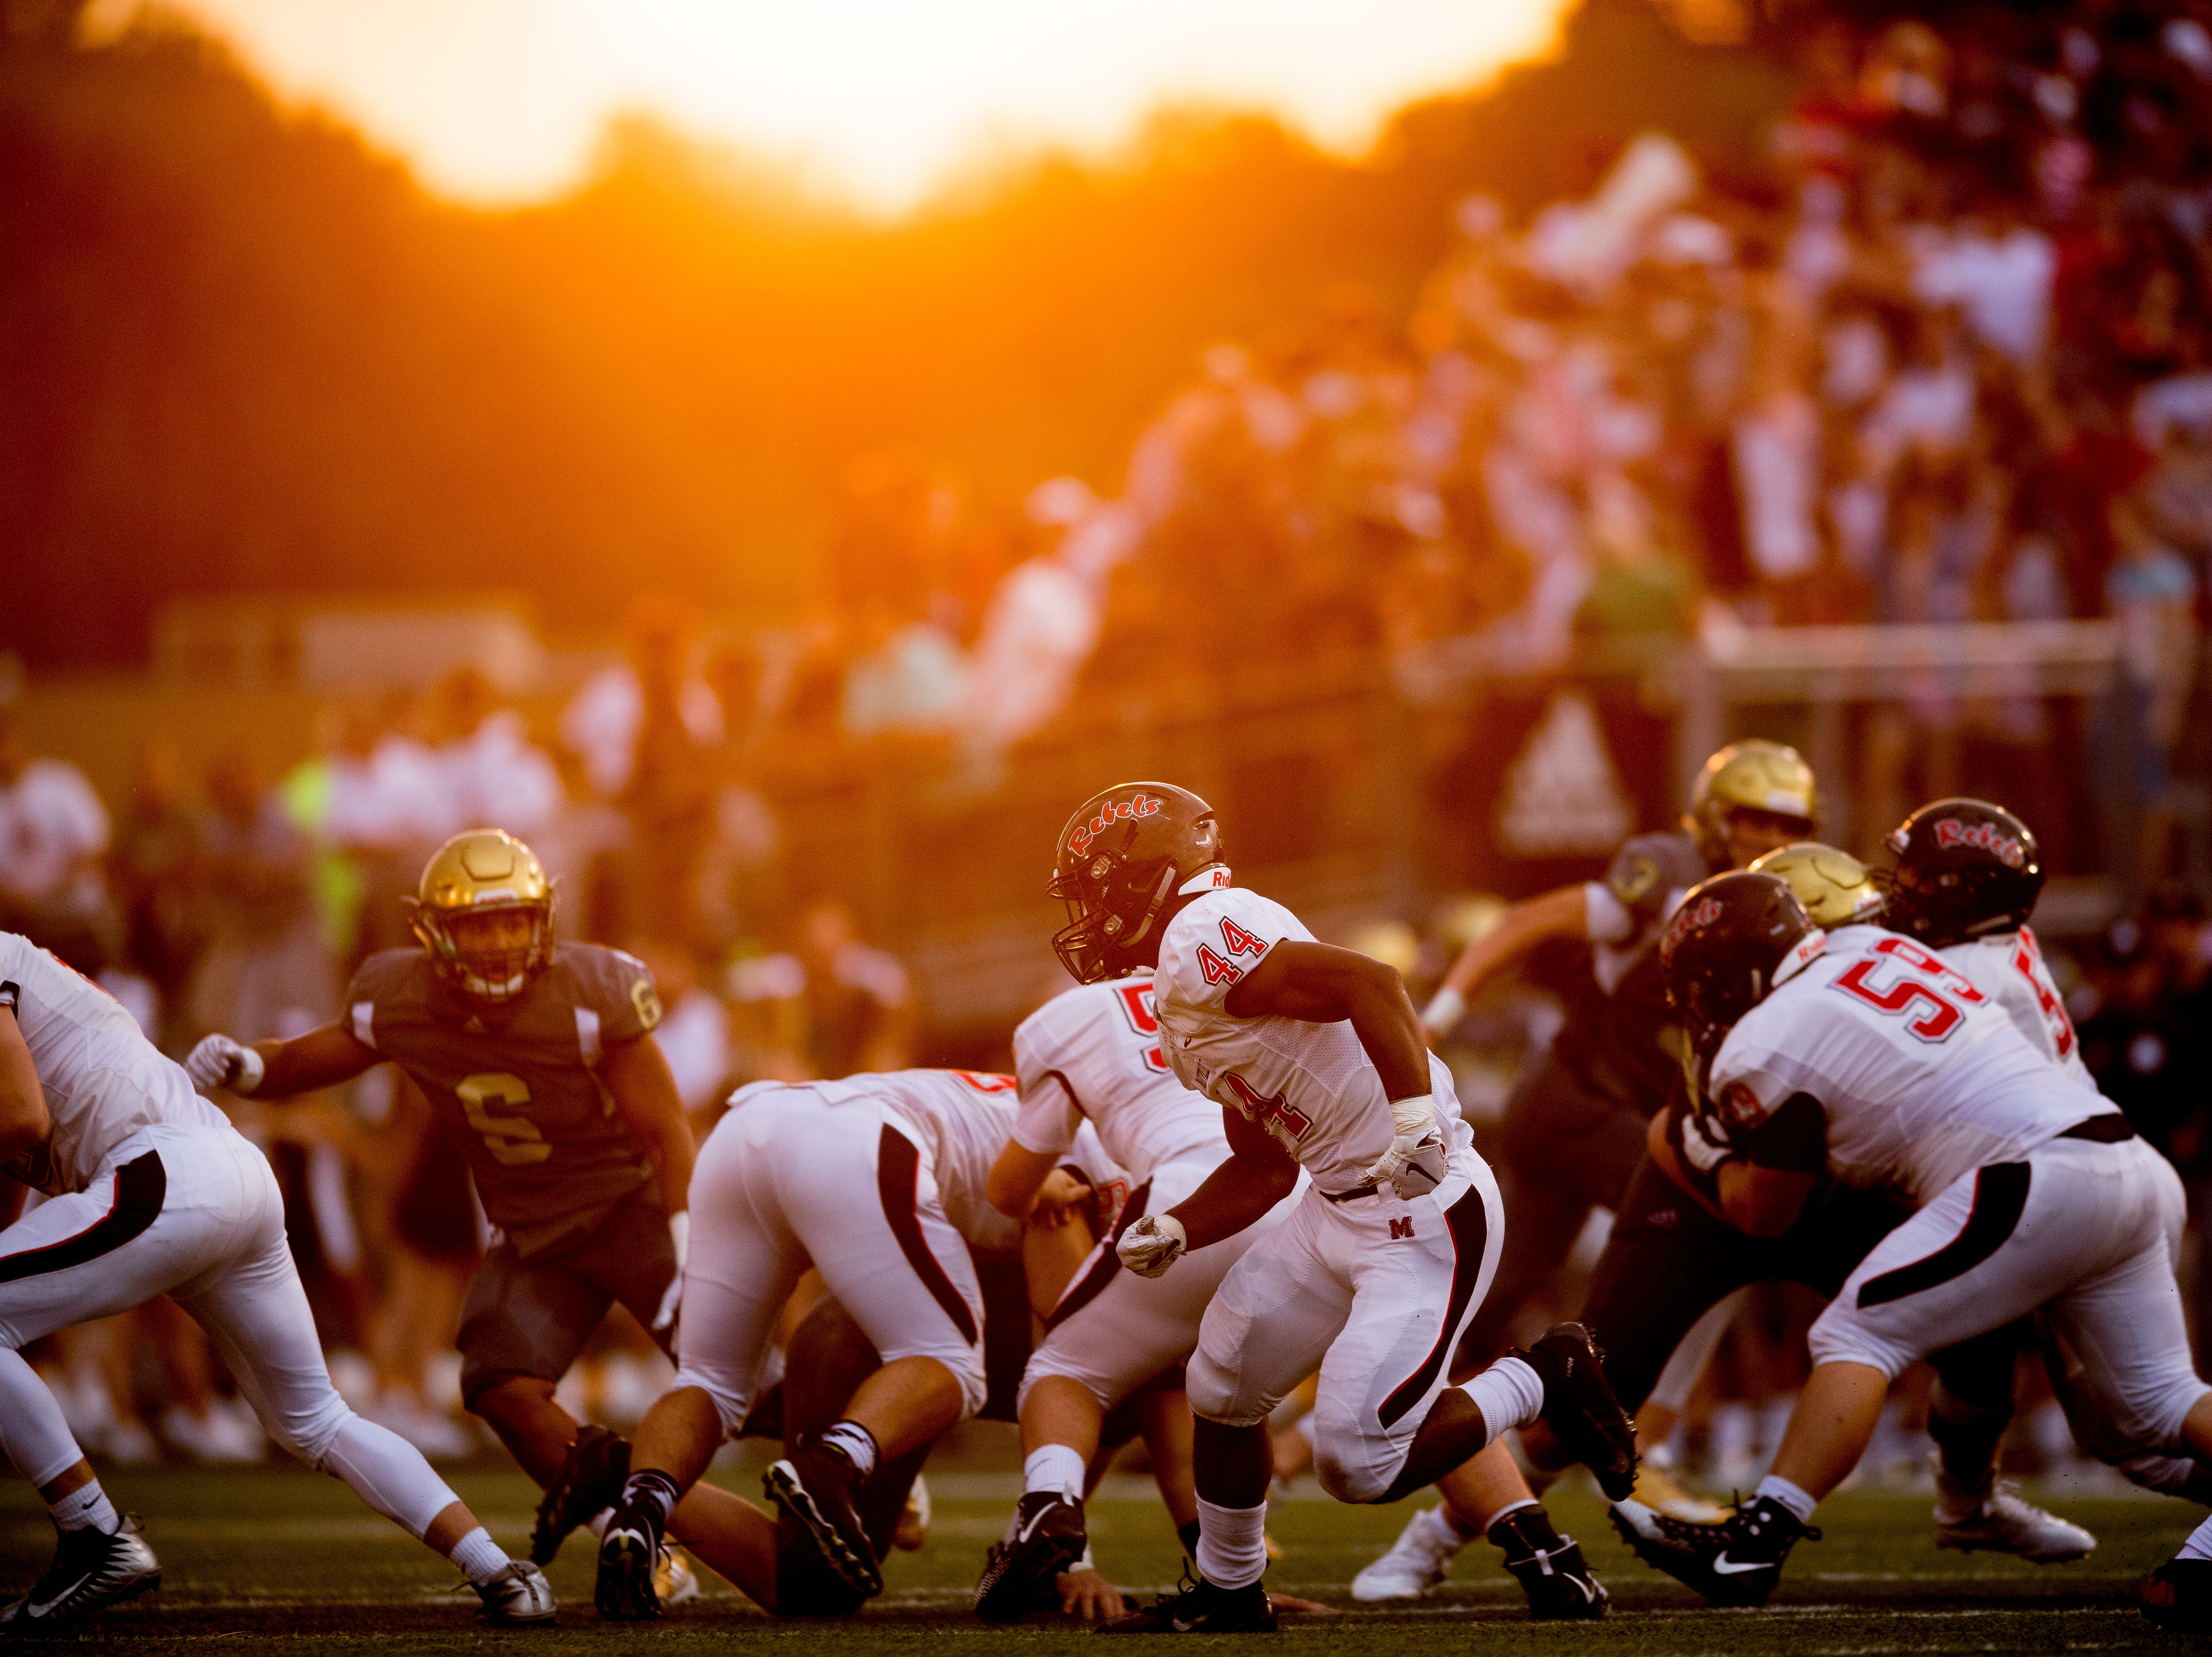 The sun sets over players during a football game between Maryville and Catholic at Catholic High School in Knoxville, Tennessee on Friday, August 17, 2018.